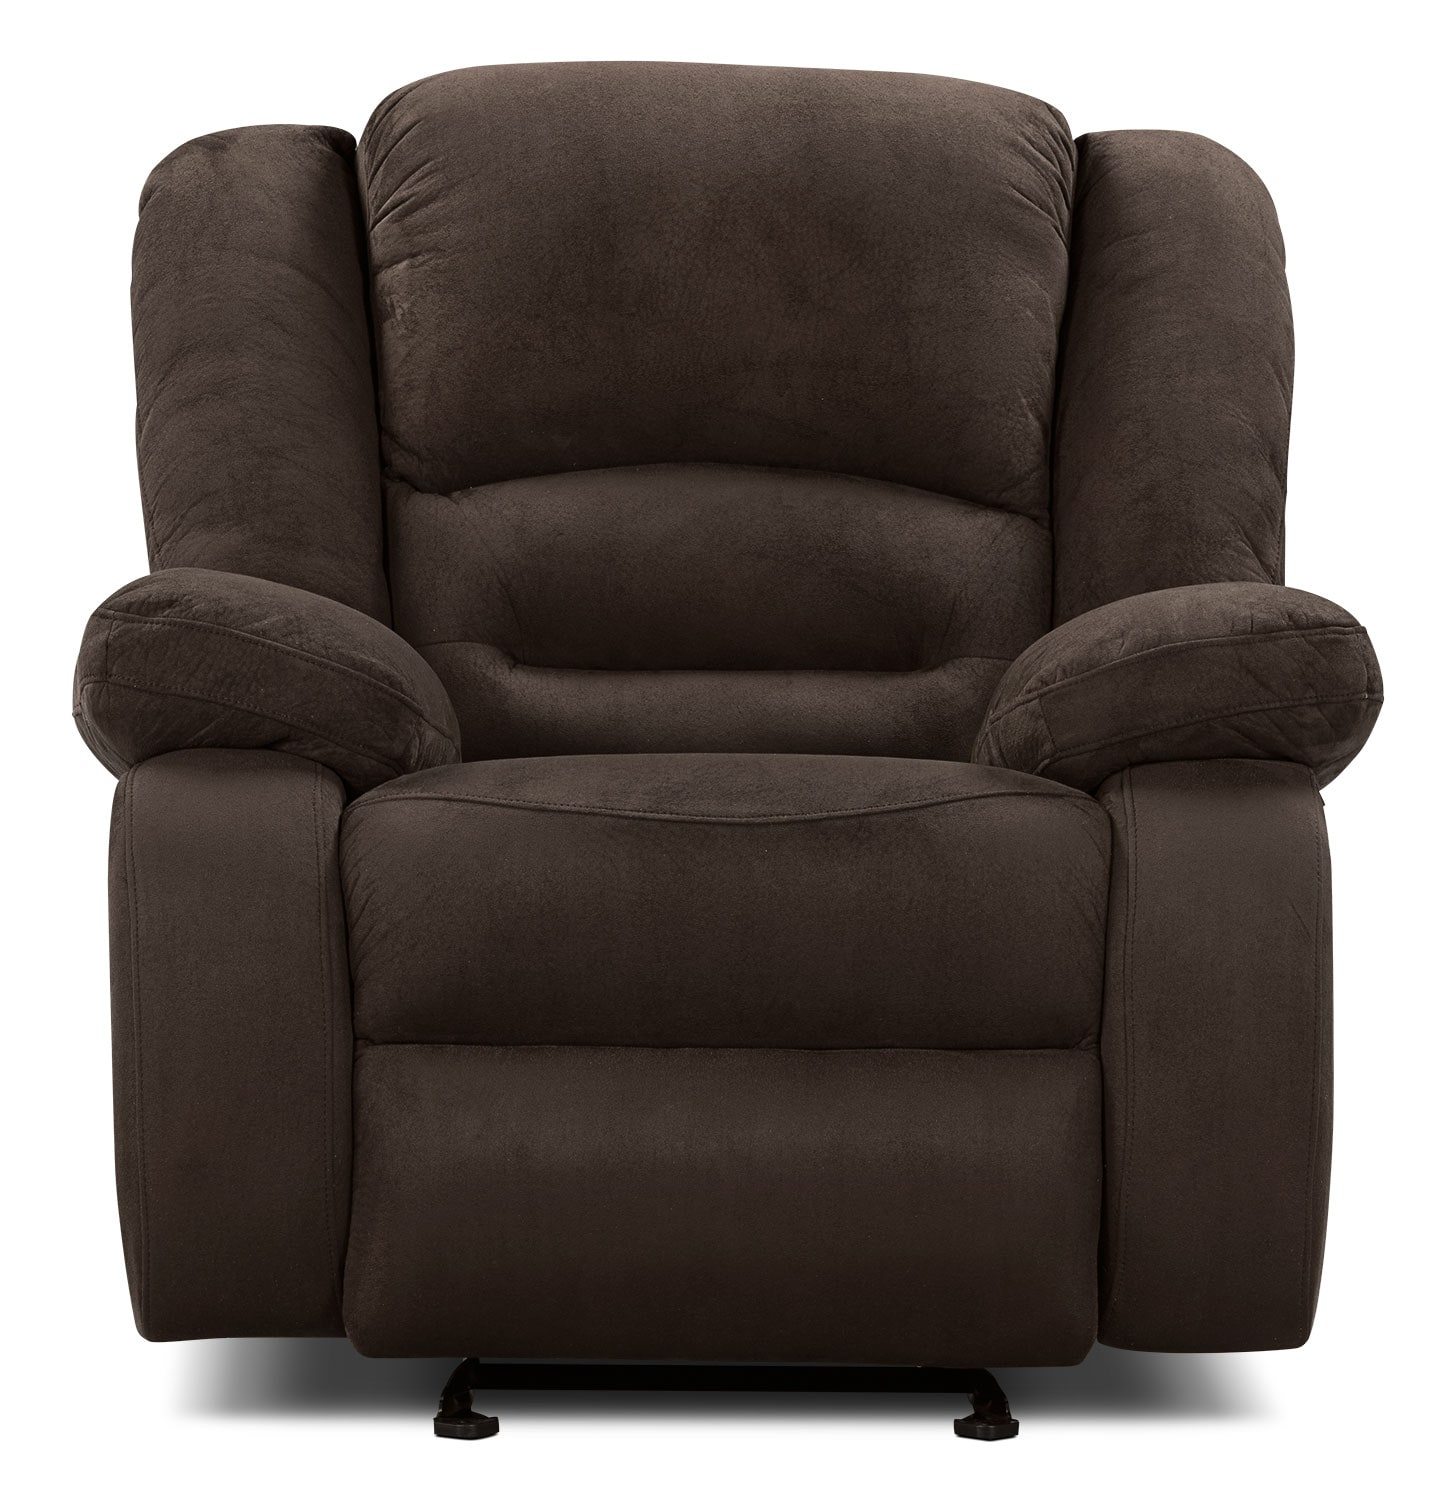 Living Room Furniture - Toreno Microsuede Power Recline Chair - Cocoa